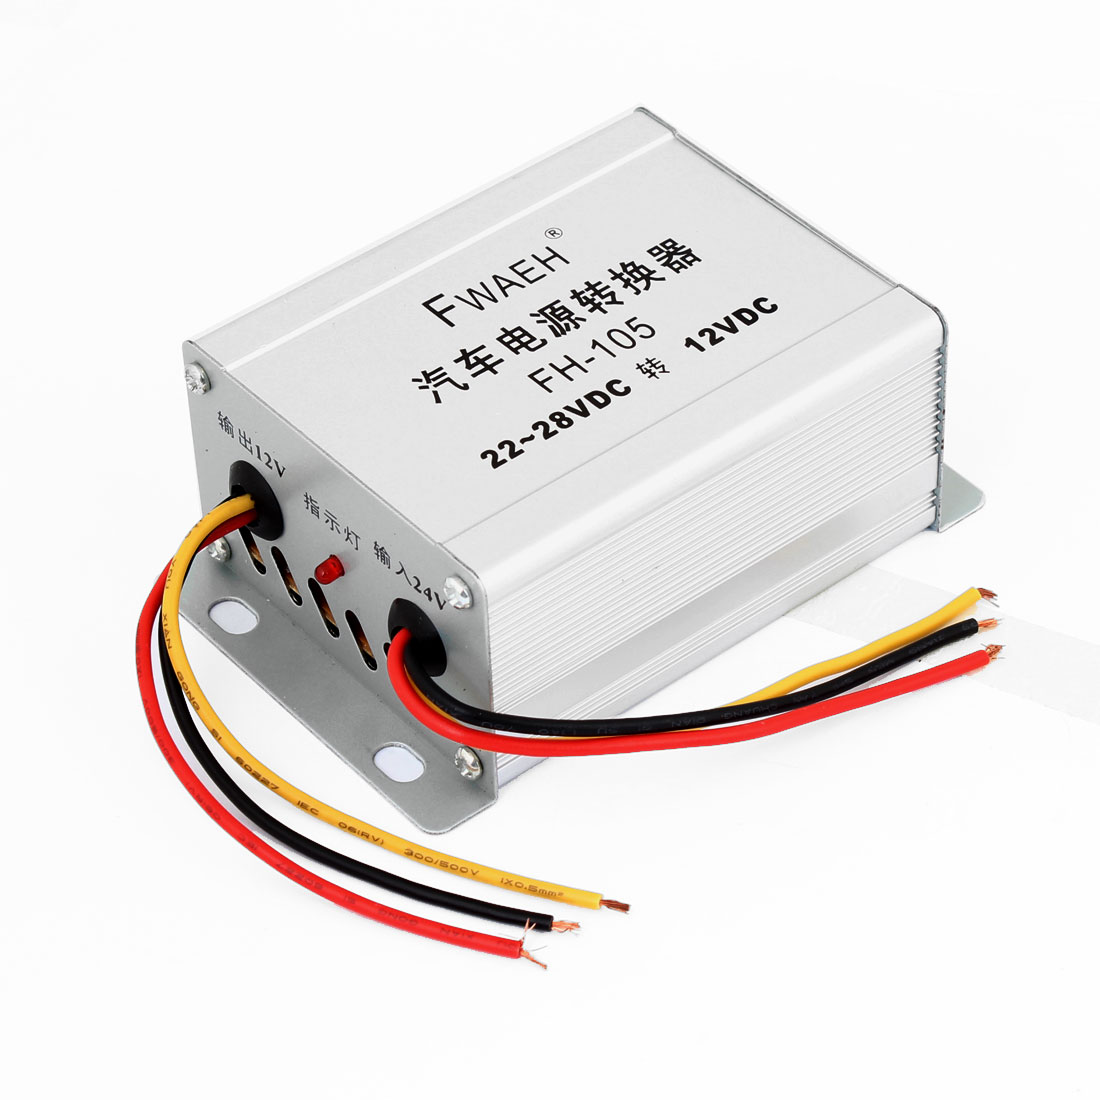 Silver Tone Metal Body DC 22-28V to DC 12V Car Electric Converter